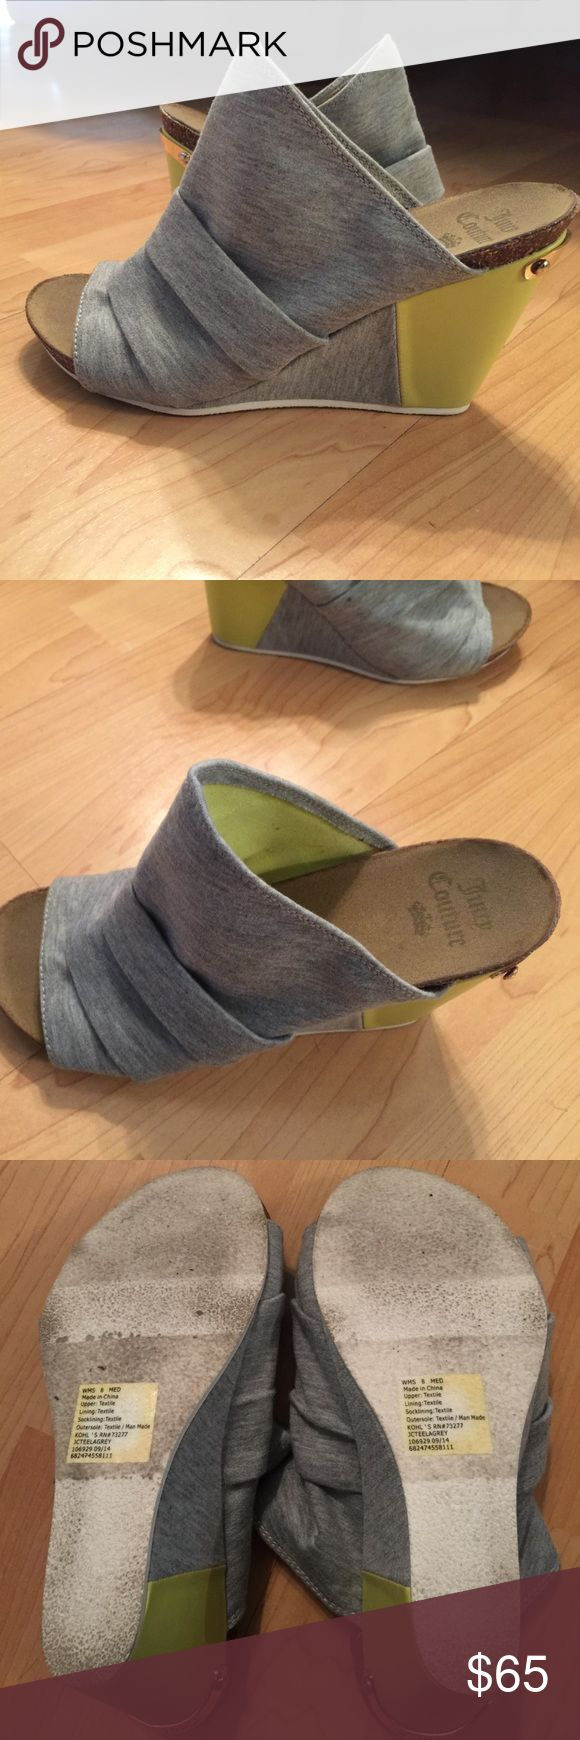 Juicy couture grey and neon yellow wedges Juicy couture grey and neon yellow wedges Juicy Couture Shoes Wedges